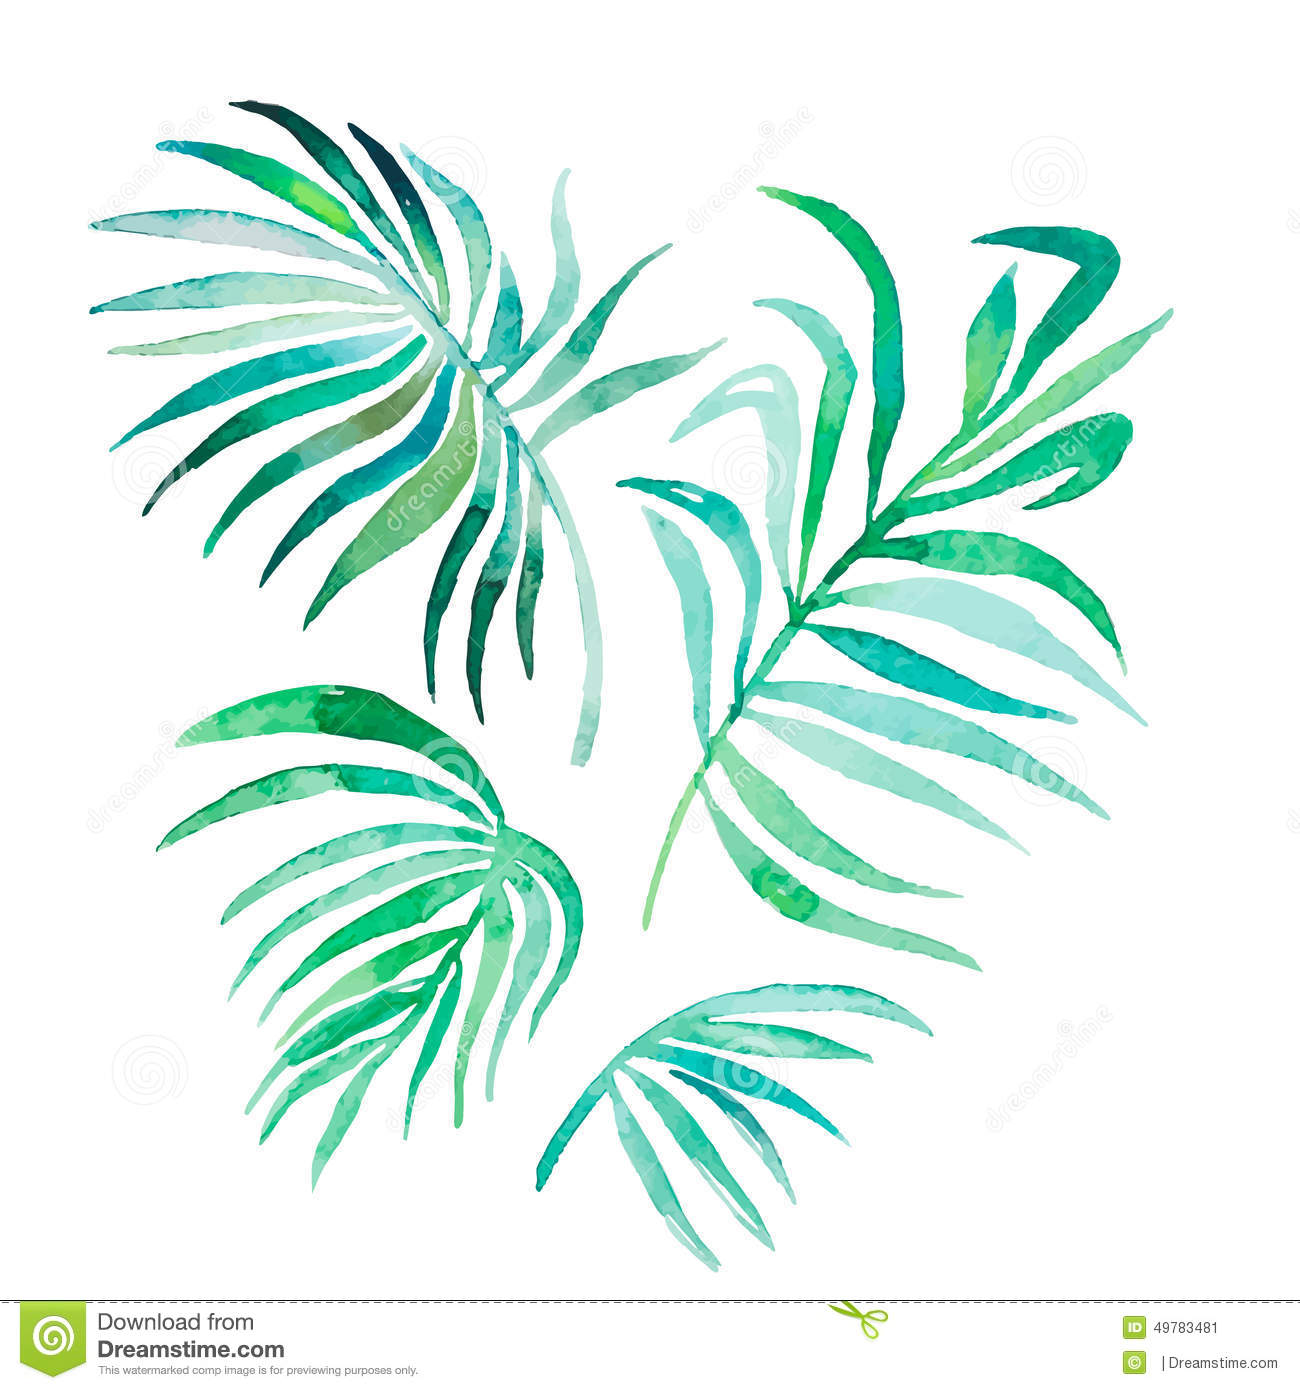 Watercolor Palm Leaves Isolated On White.Vector Stock Vector ...